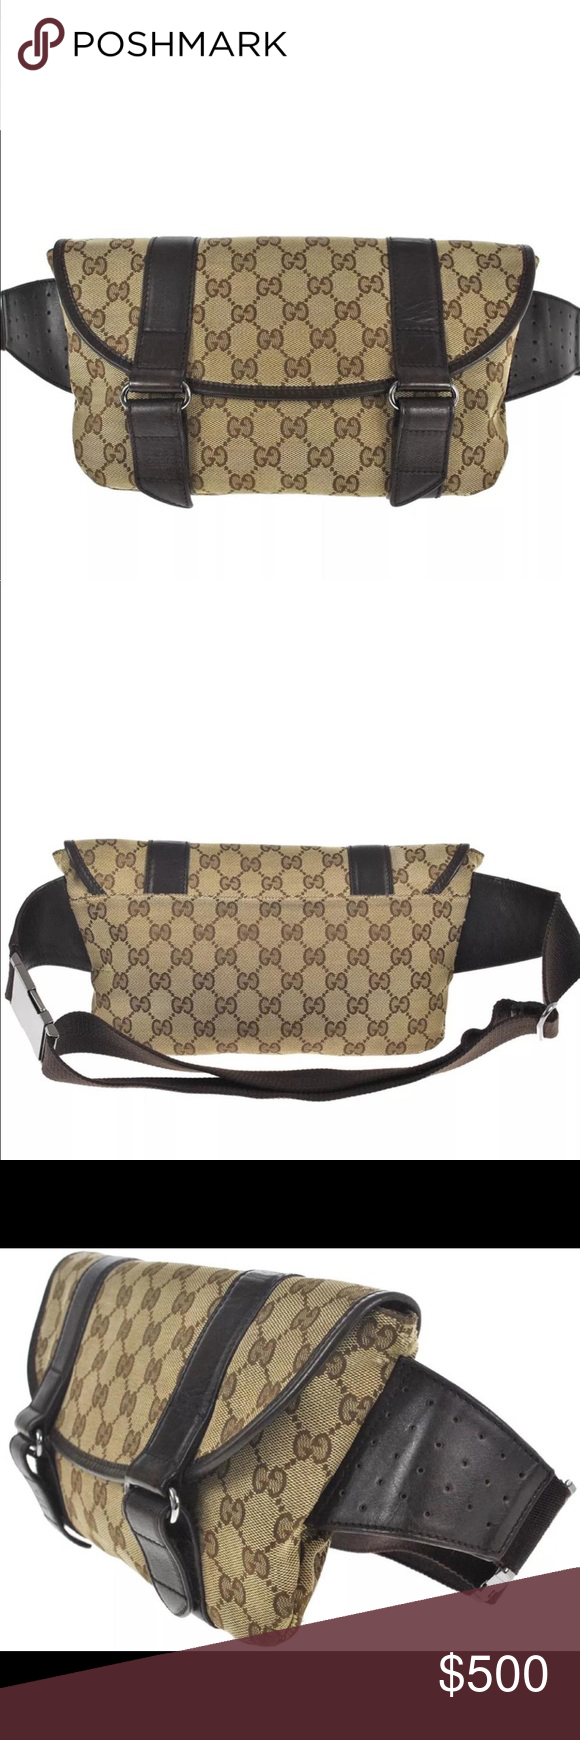 191e48135c3d Authentic Gucci waist bag/crossbody brown canvas Authentic Gucci waste bag/ fanny back/